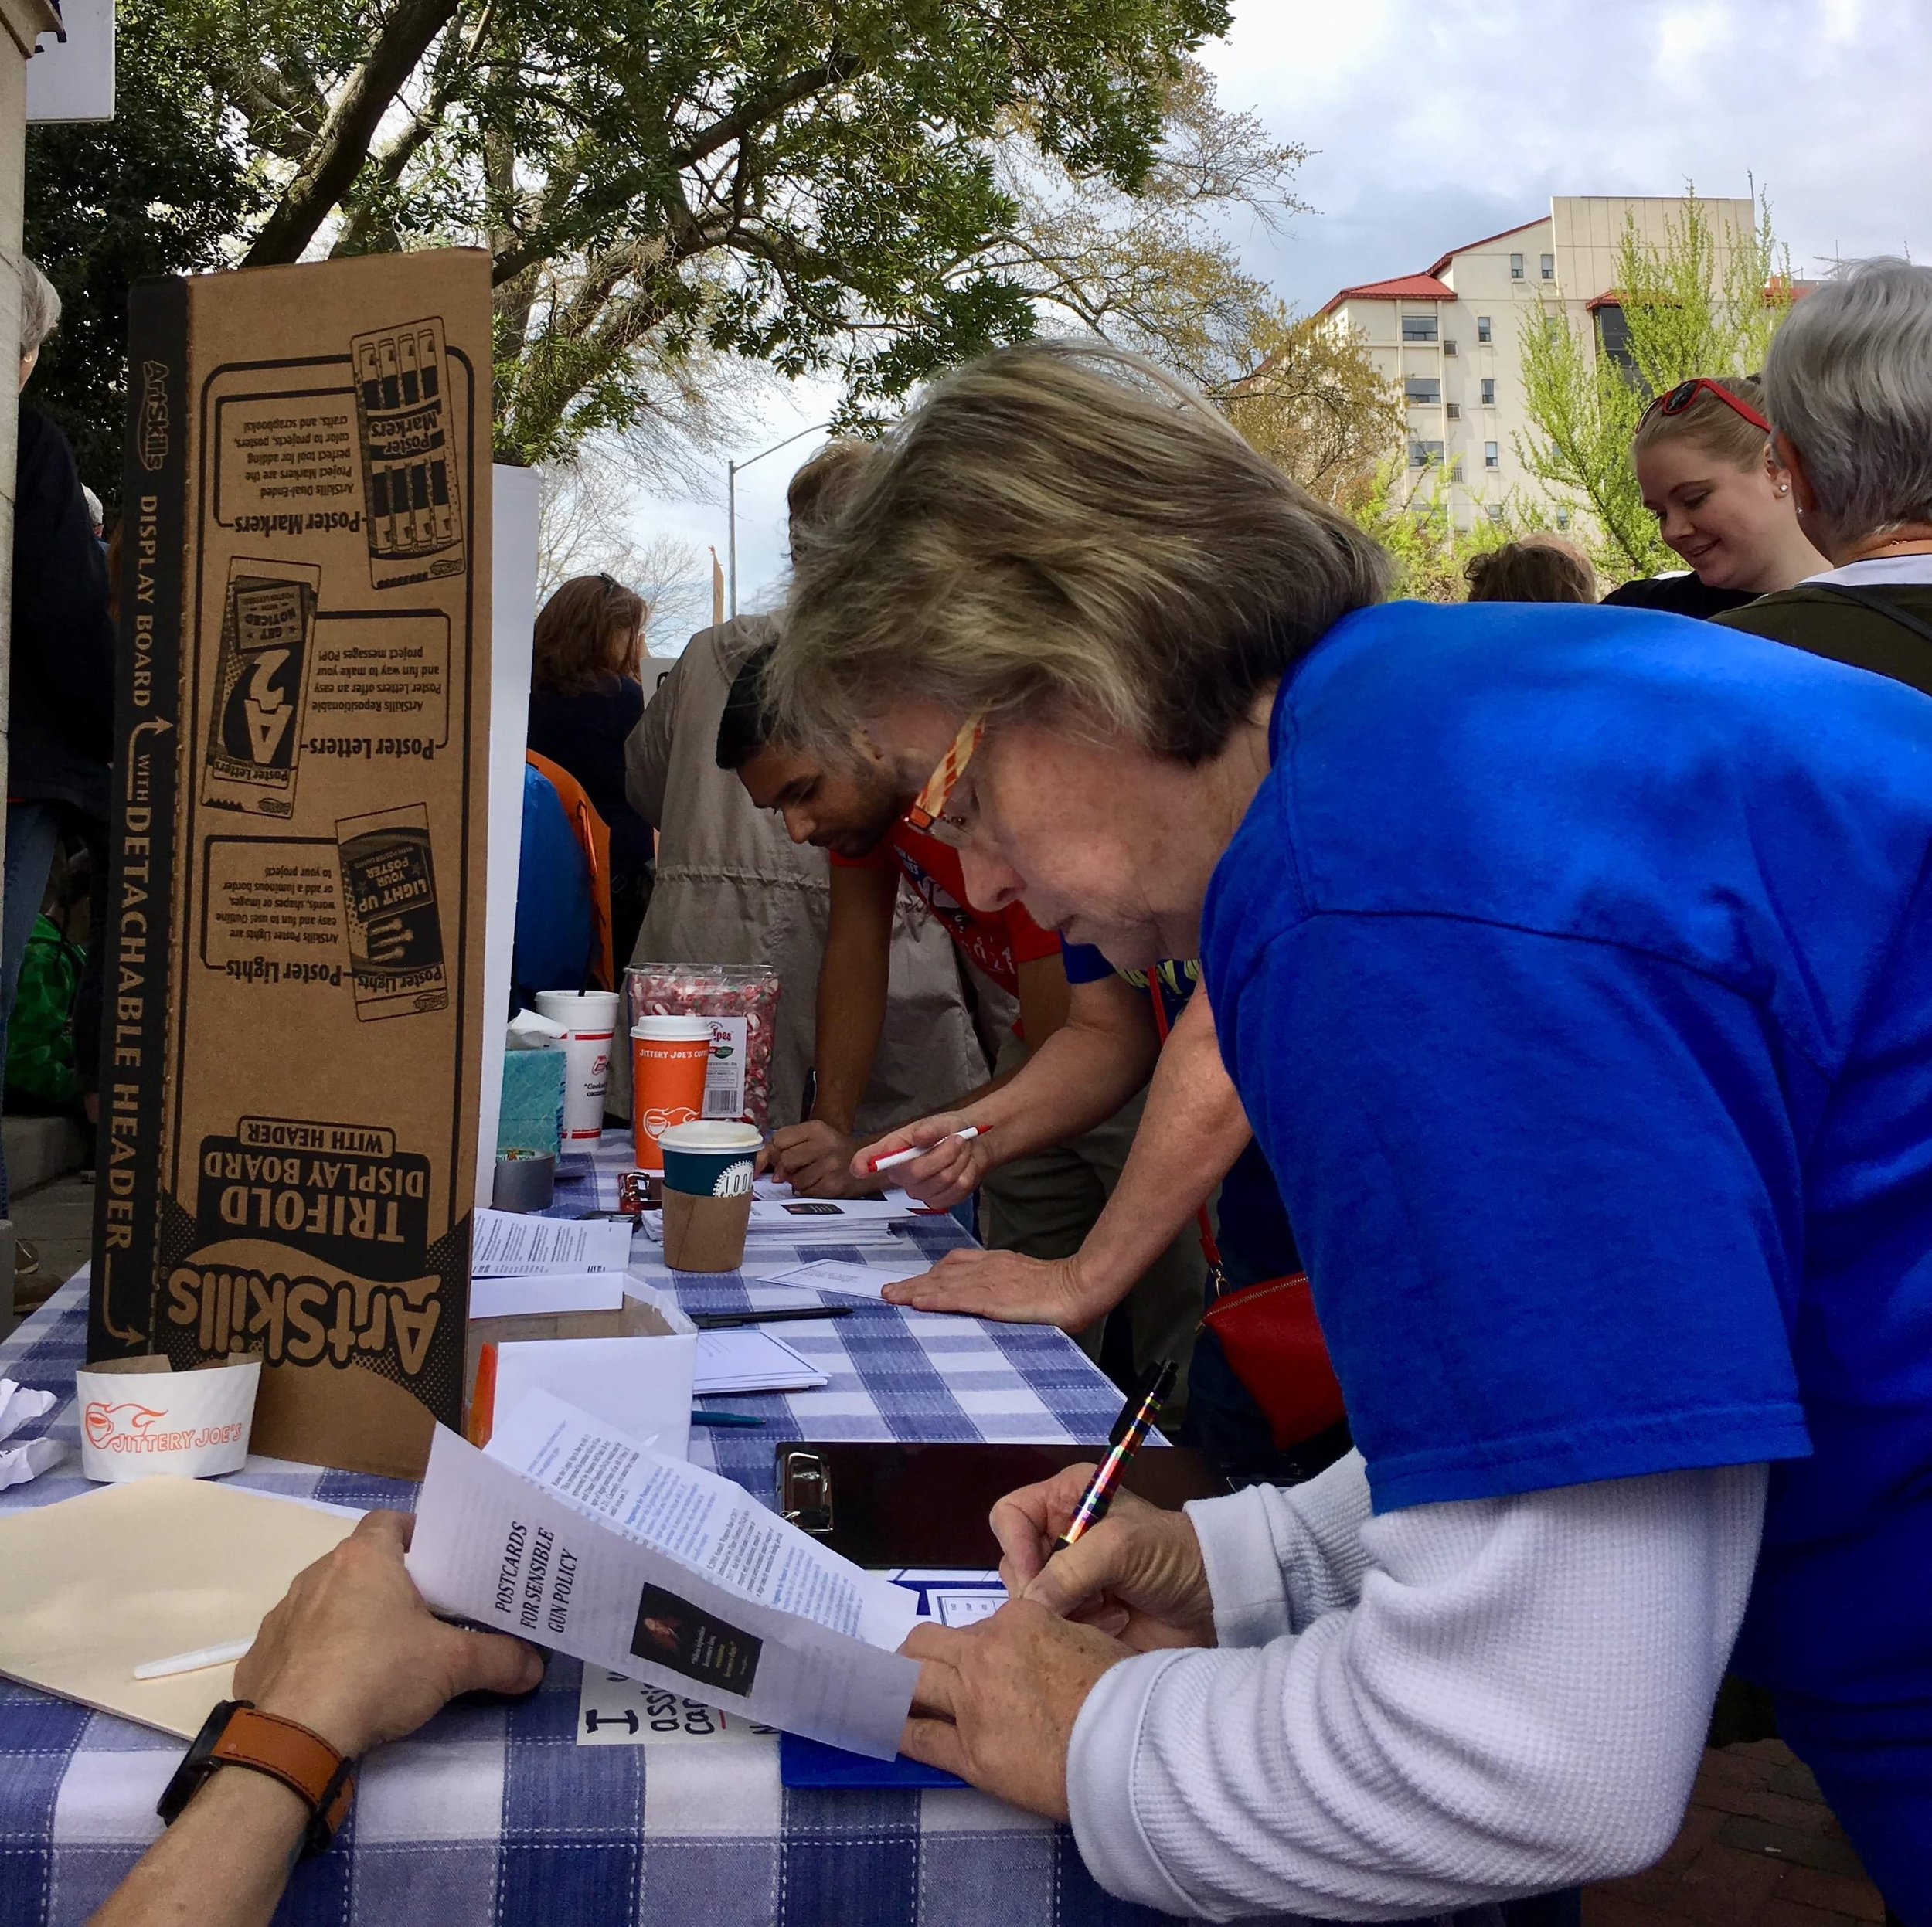 Get Active in Our Events - We need you! our members invest their time, energy, and passion in Indivisible's many initiatives. Find an event that fits your skills and interests. Active members help Indivisible 10 make a difference for Democracy.